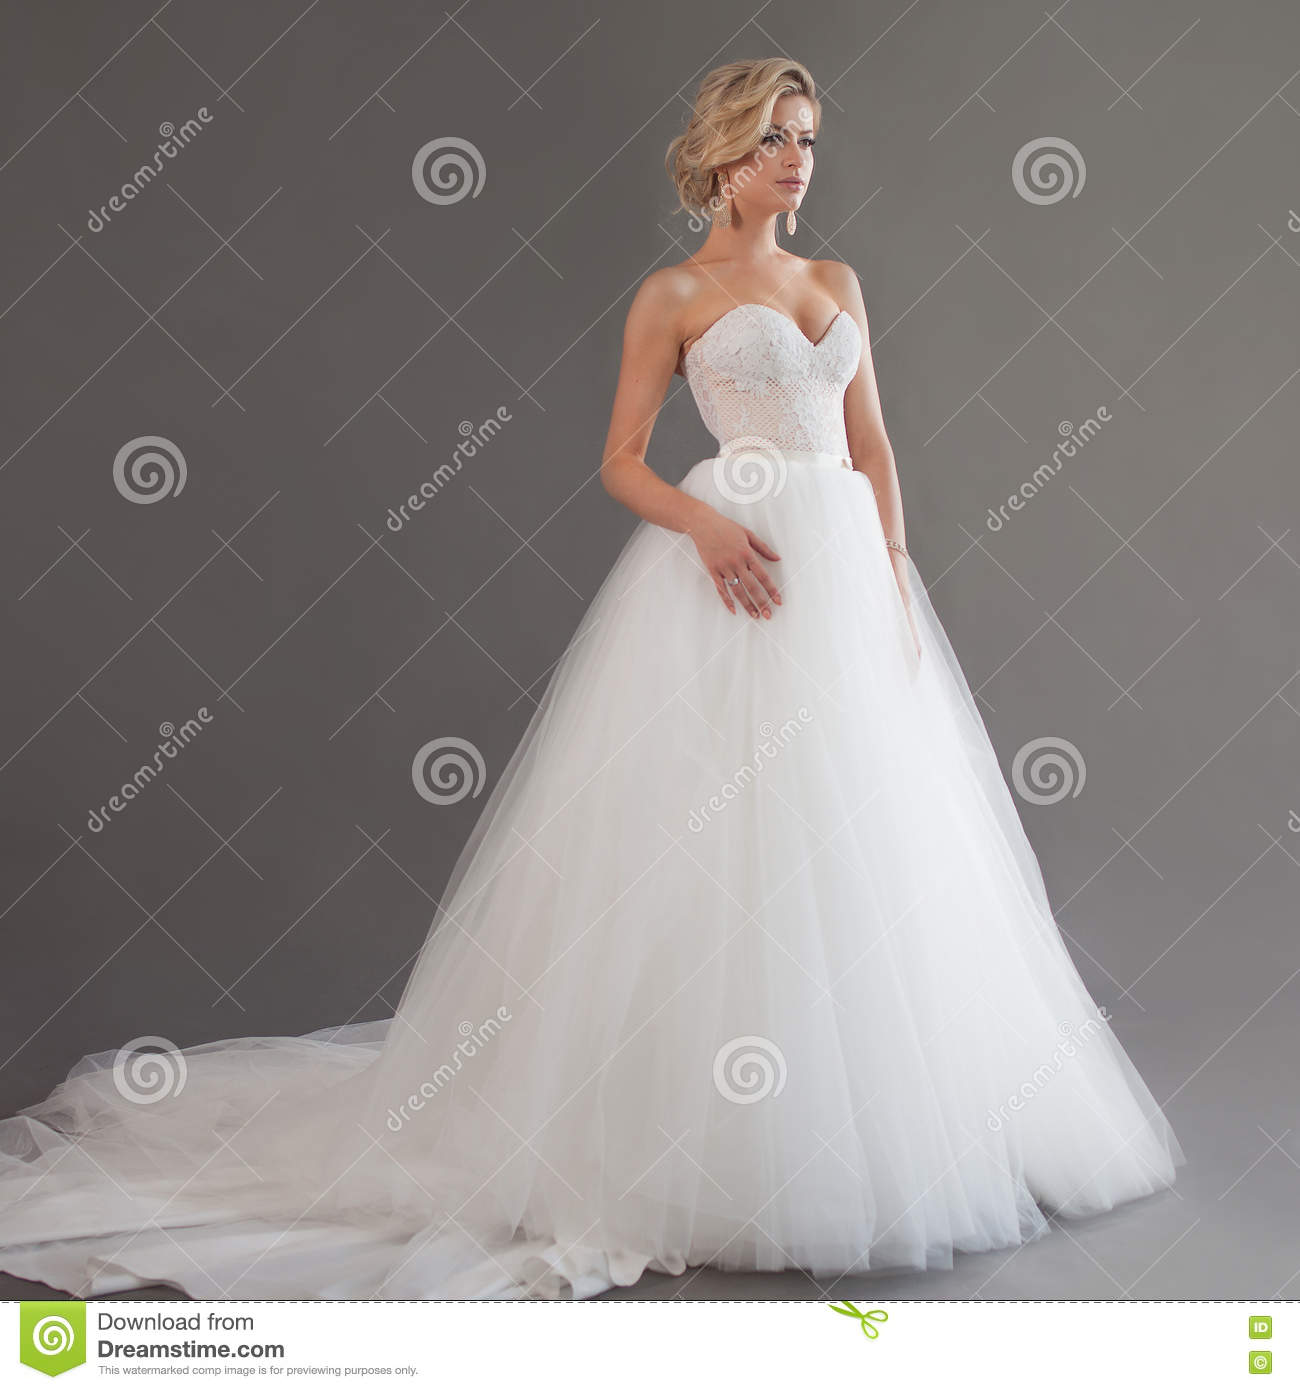 Charming young bride in luxurious wedding dress. Pretty girl in white. Emotions of happiness, gray background